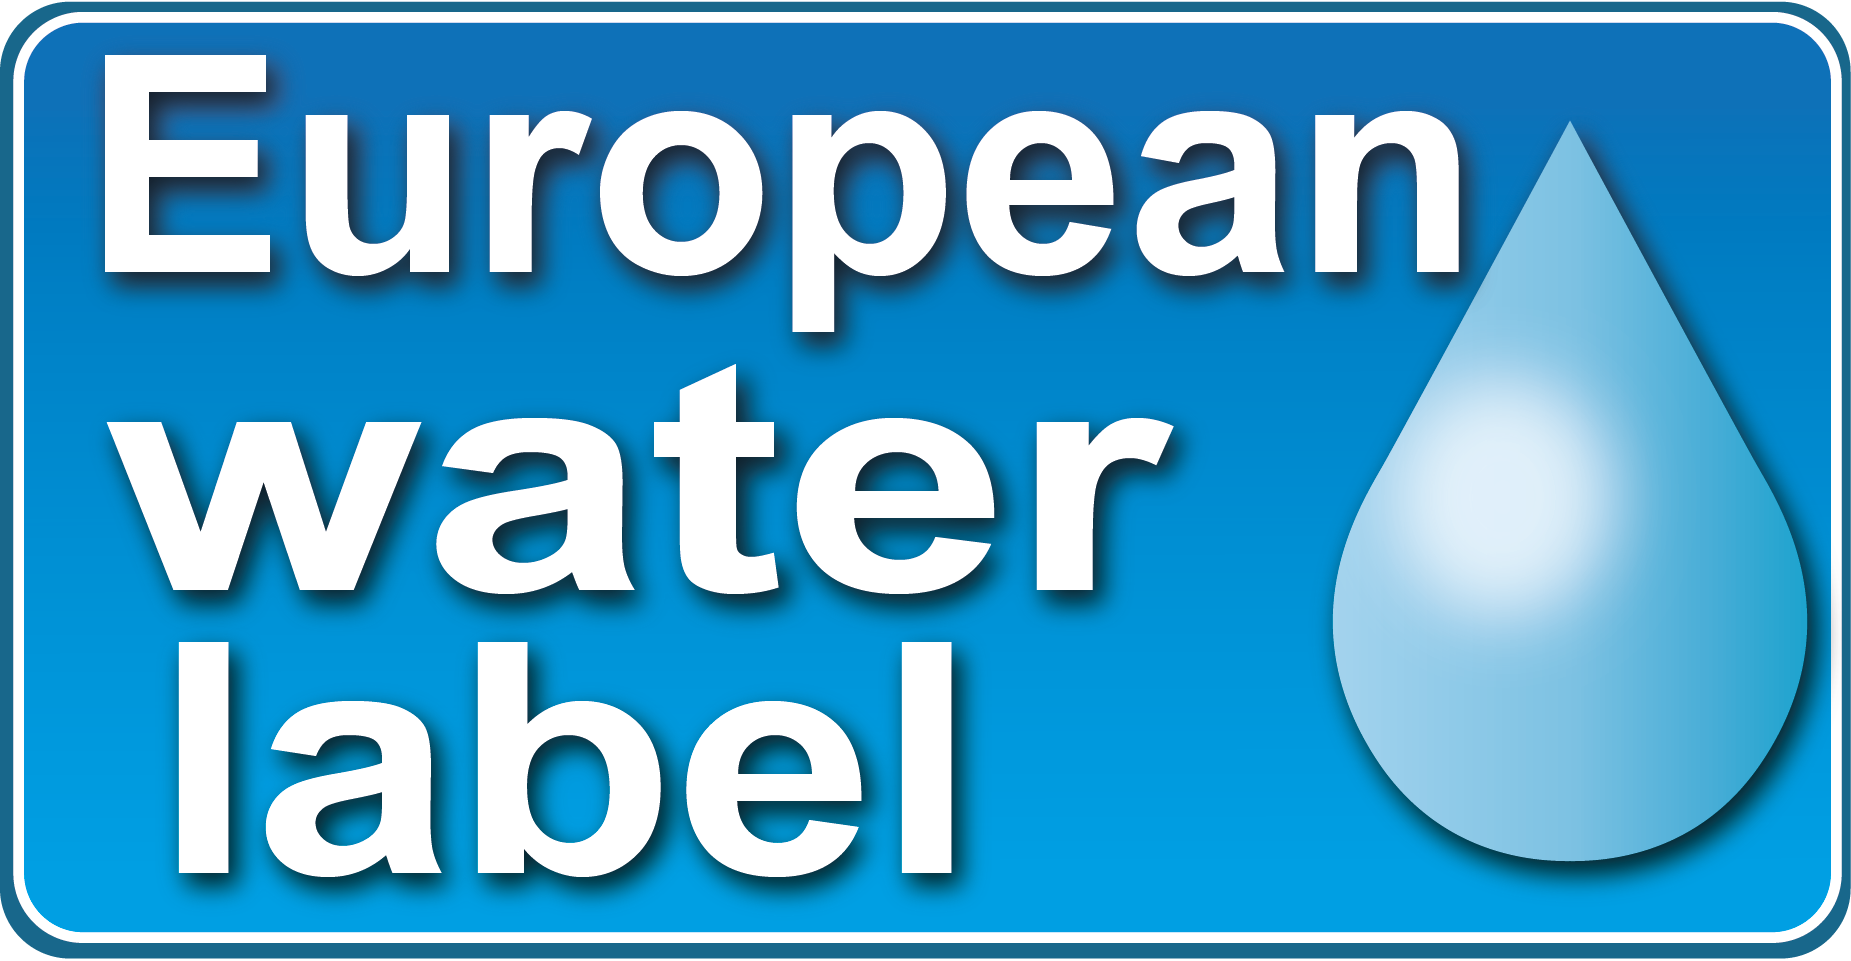 European Water label